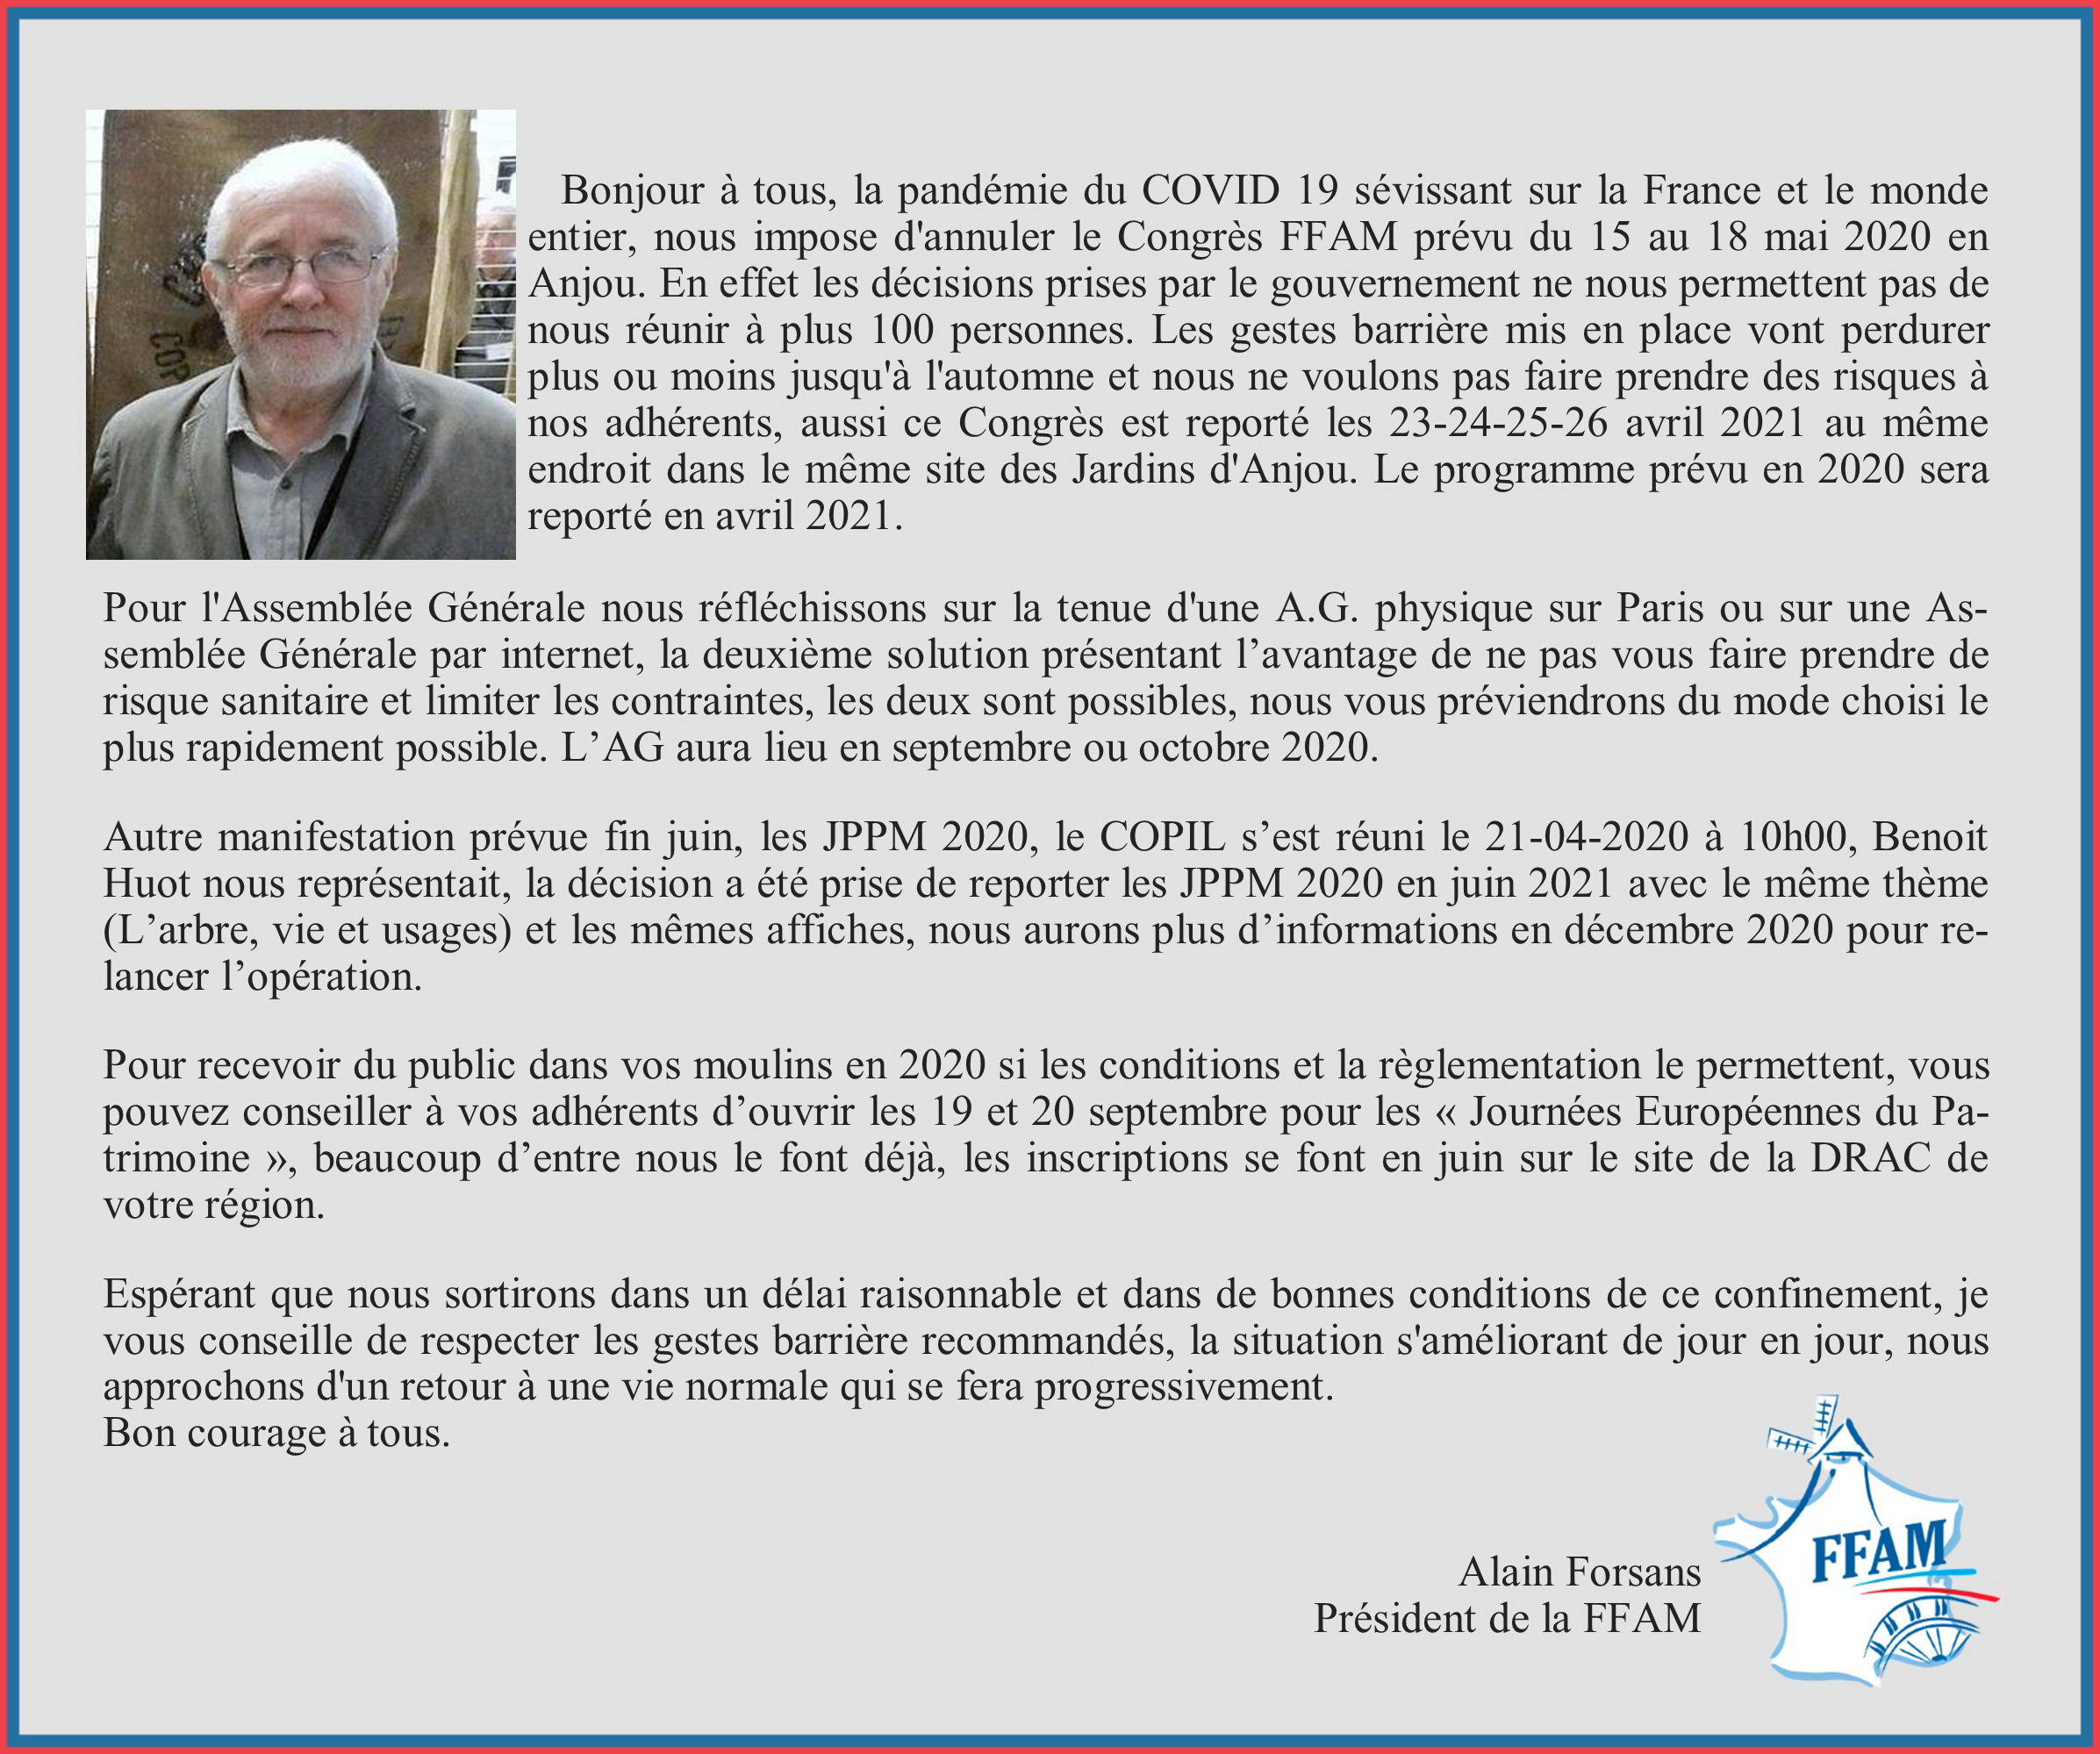 Courrier Alain Forsans annulations 2020